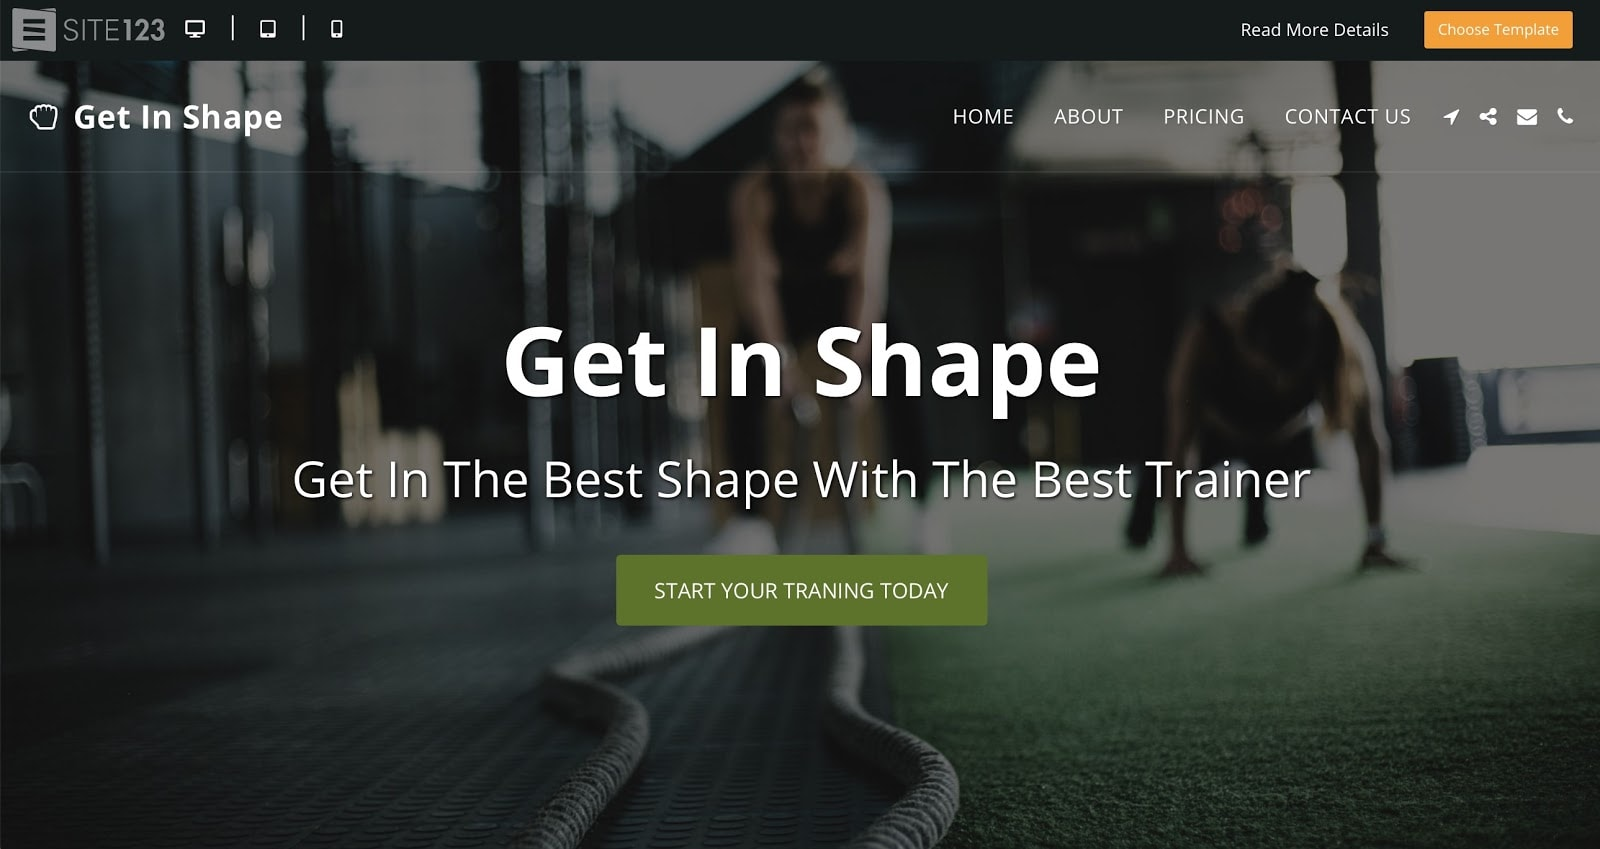 SITE123 Get In Shape template